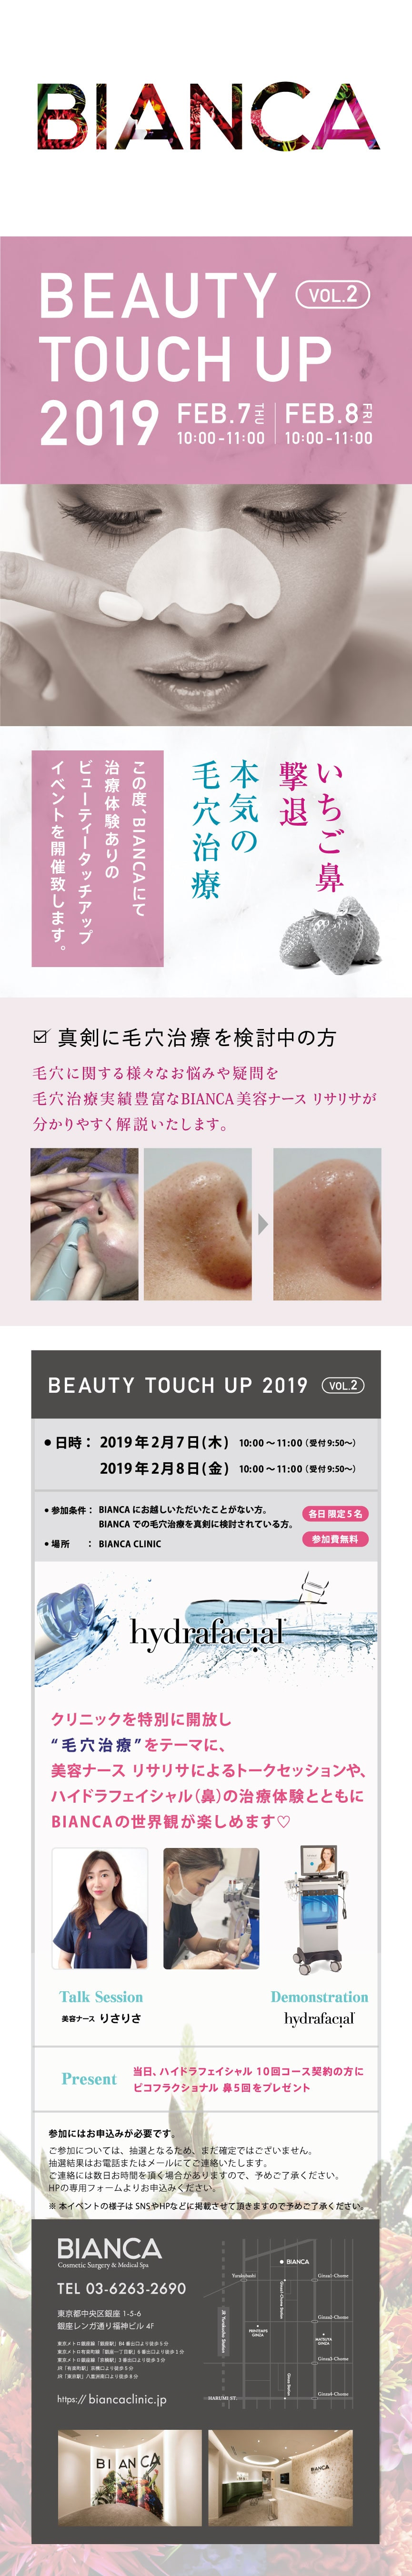 BEAUTY TOUCH UP EVENT 開催のお知らせ